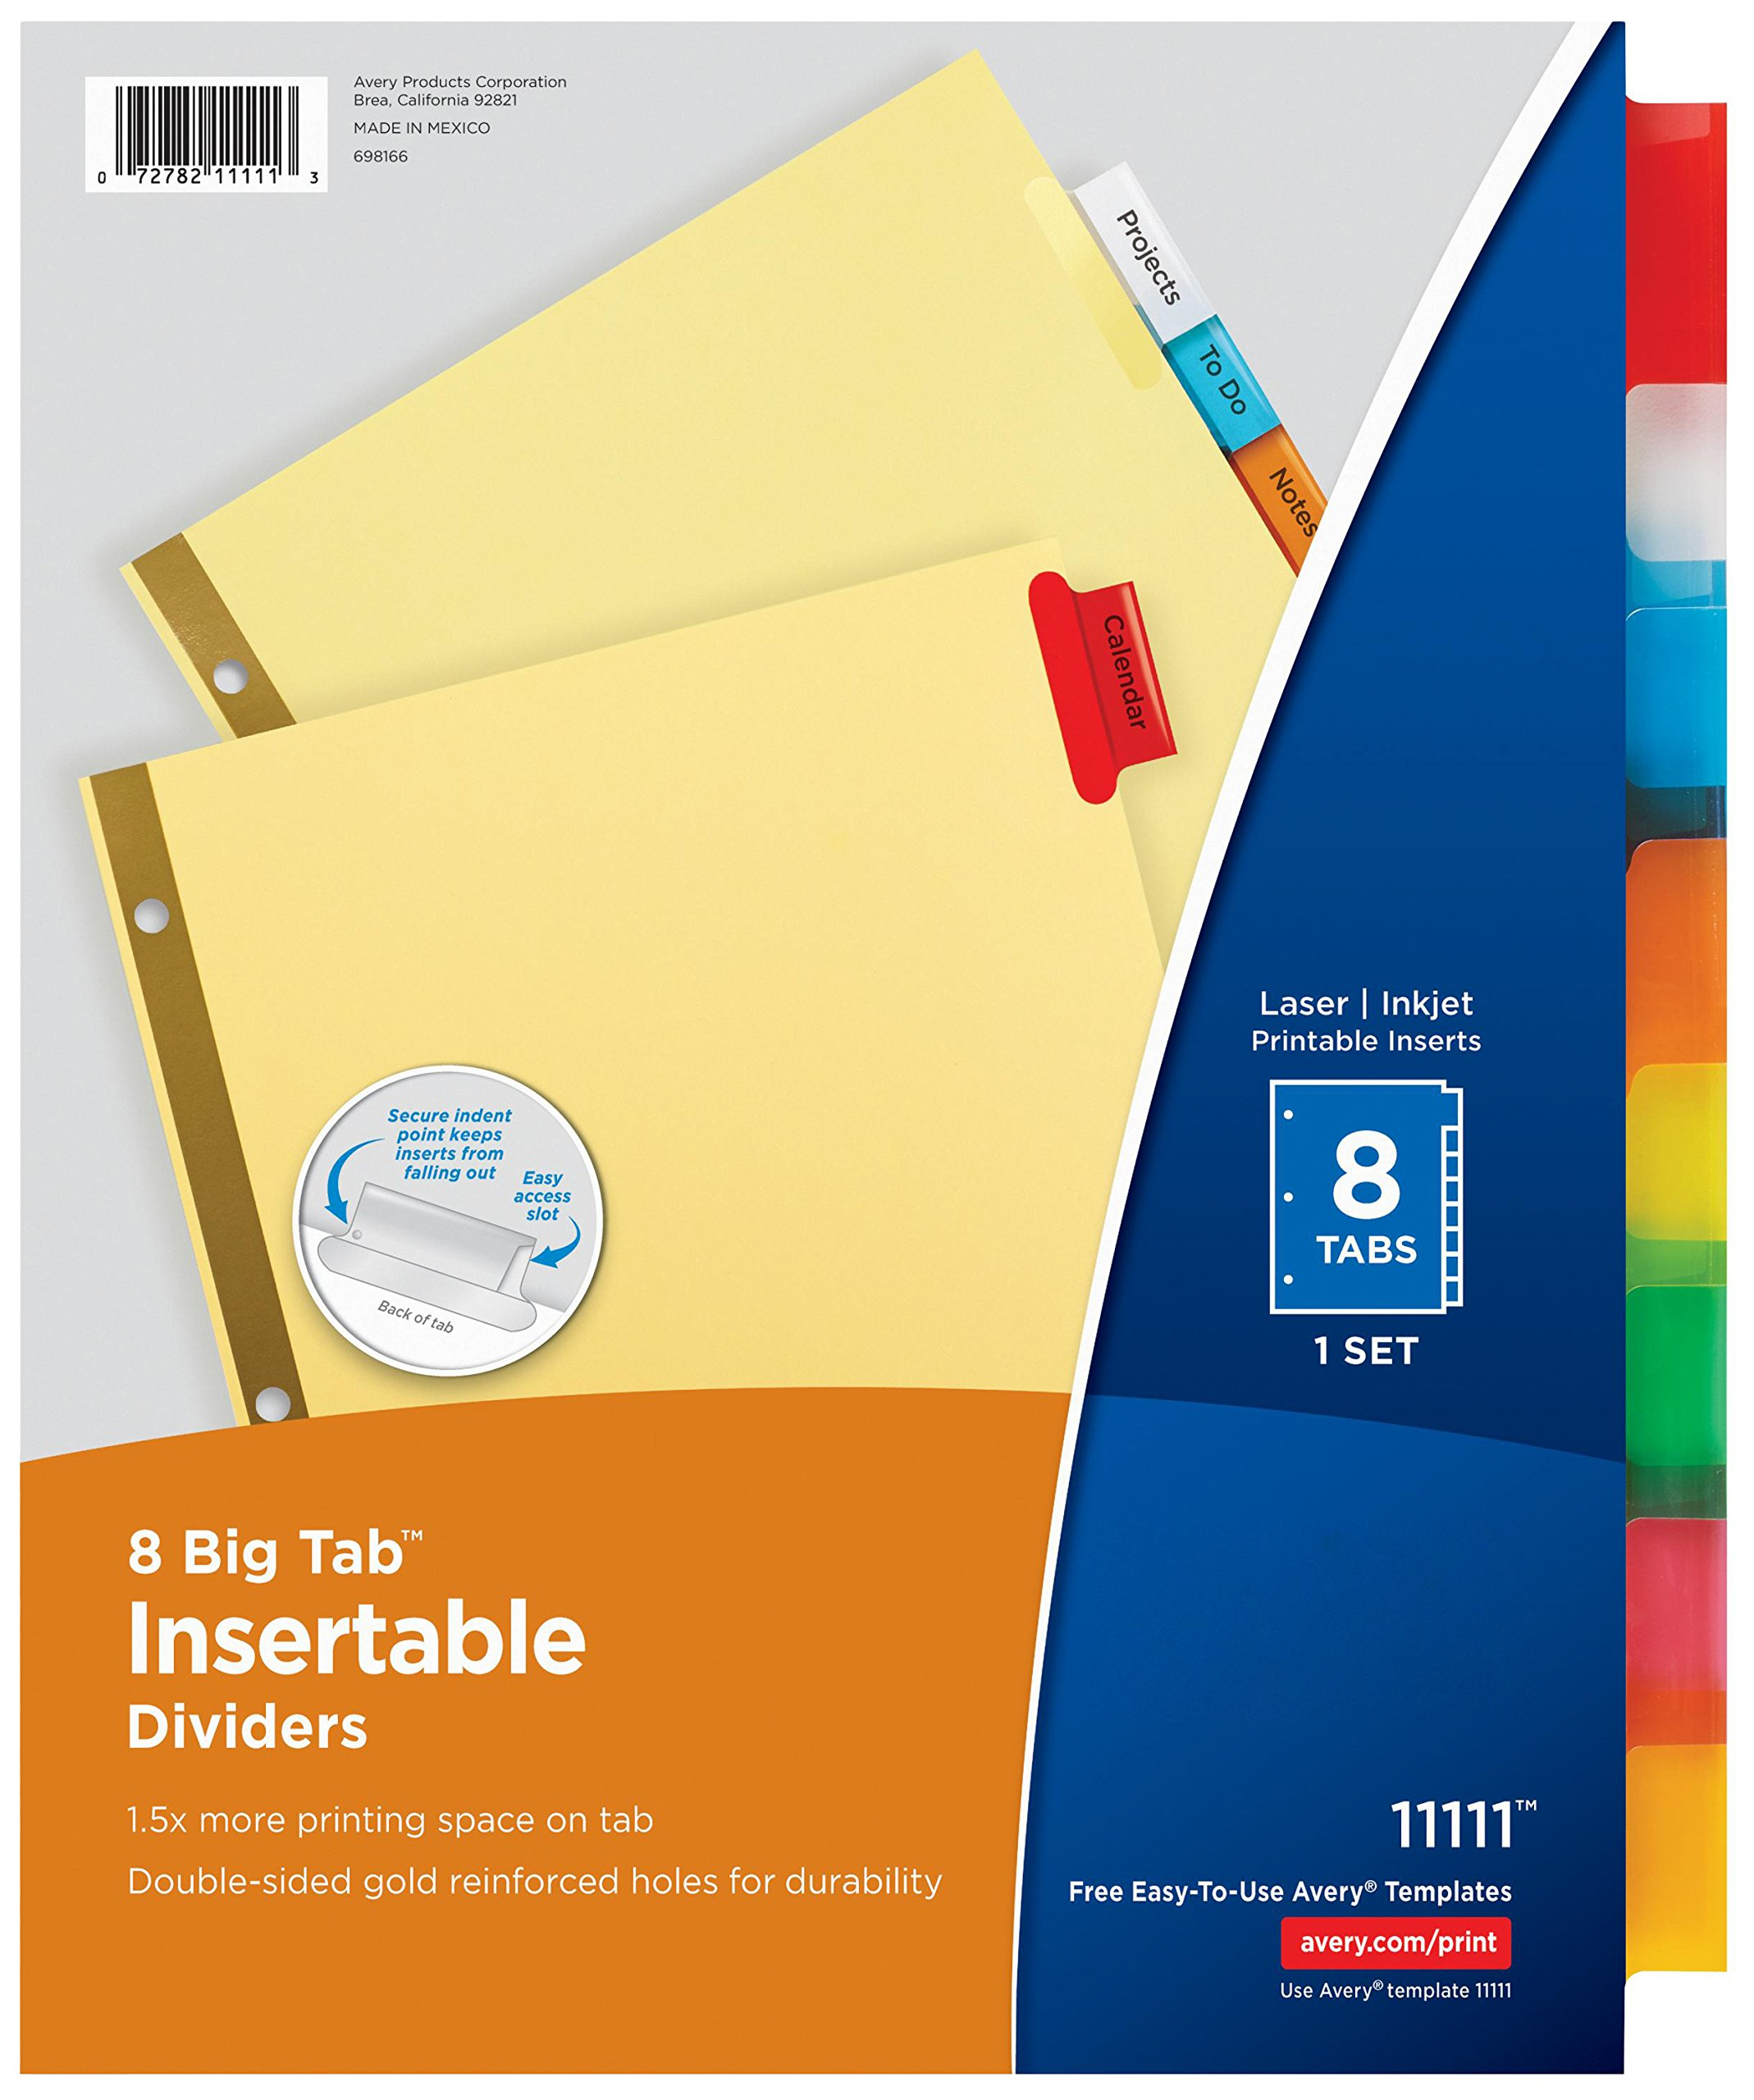 Avery Big Tab Insertable Dividers Buff Paper, 8 Multicolor Tabs, Case Pack of 48 Sets (11111)